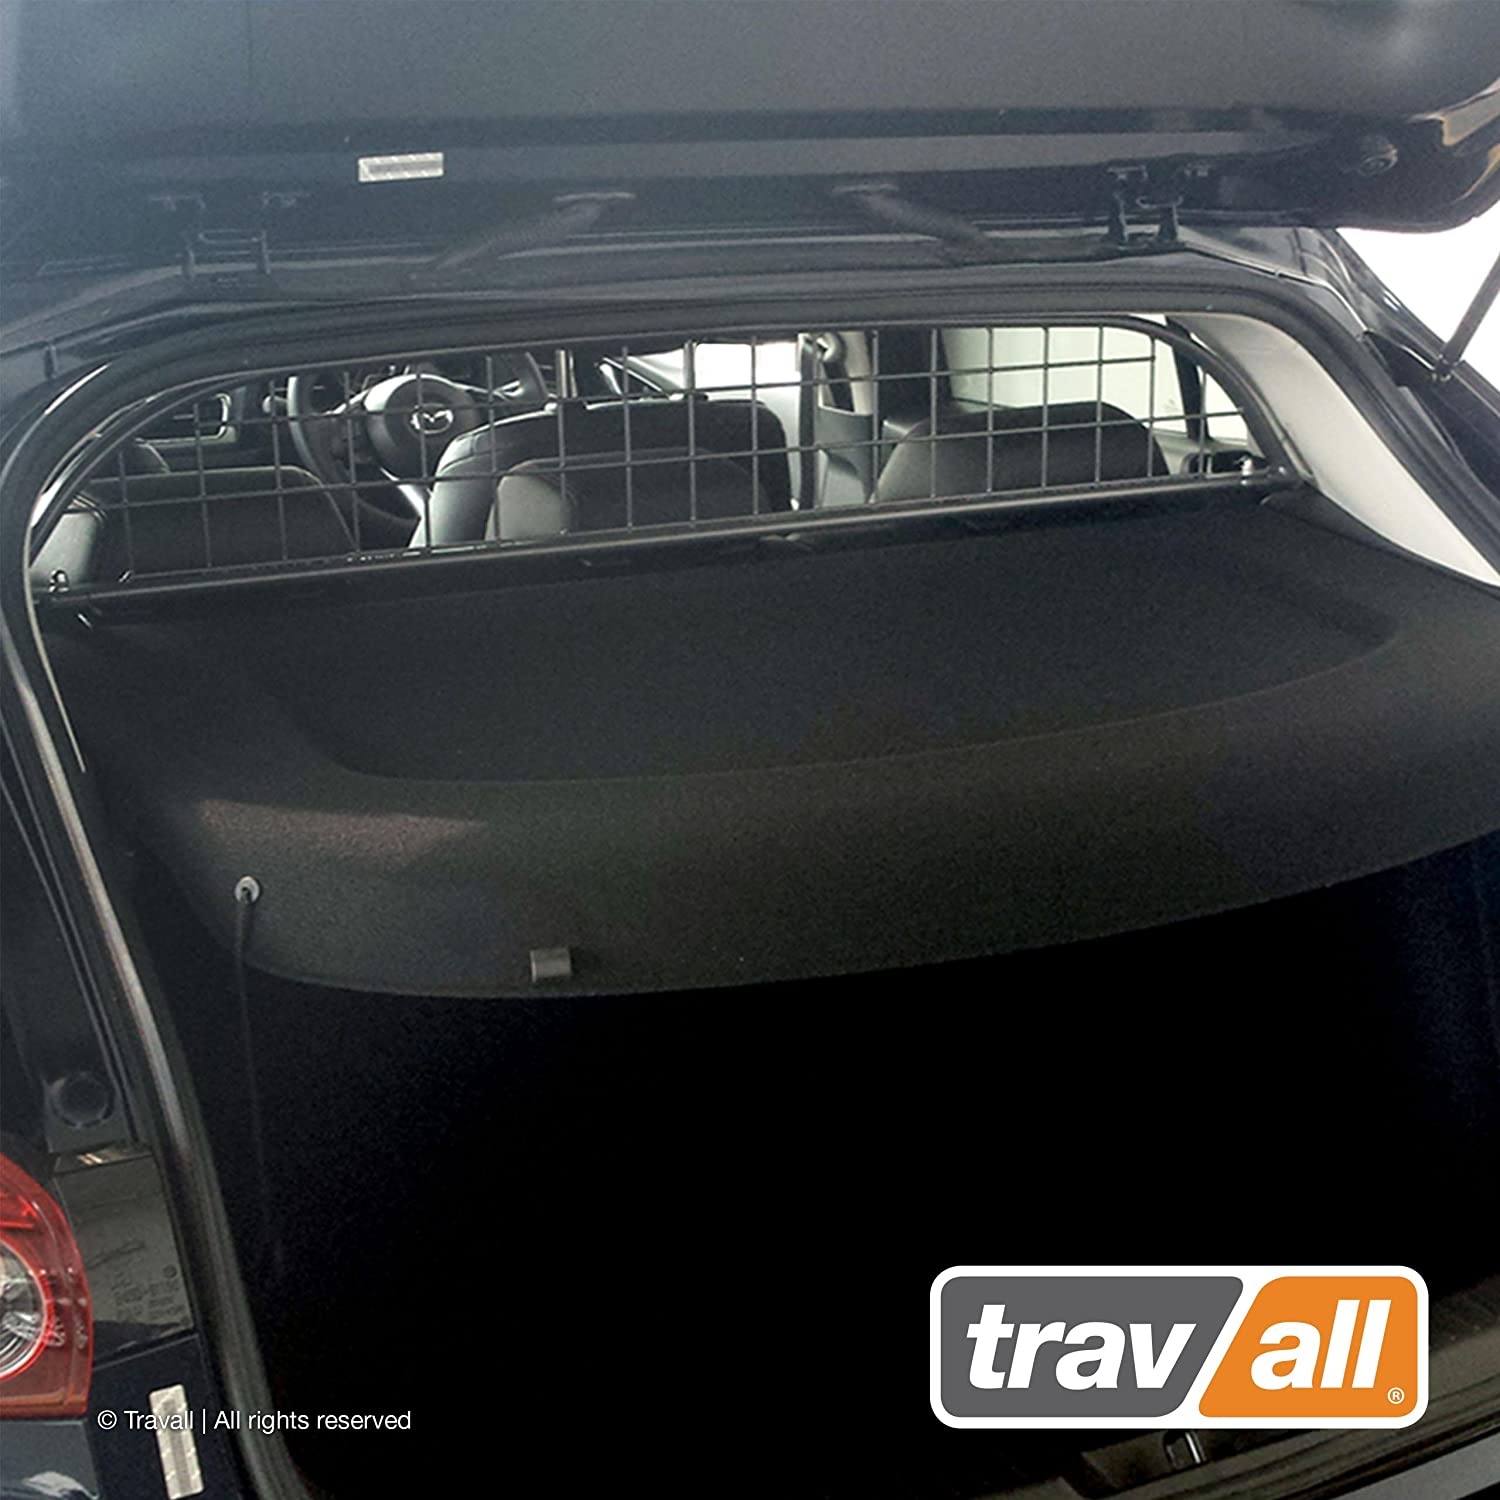 Travall Guard Compatible with Mazda3 4 Door Hatchback 2013-2018 TDG1456 – Rattle-Free Steel Pet Barrier